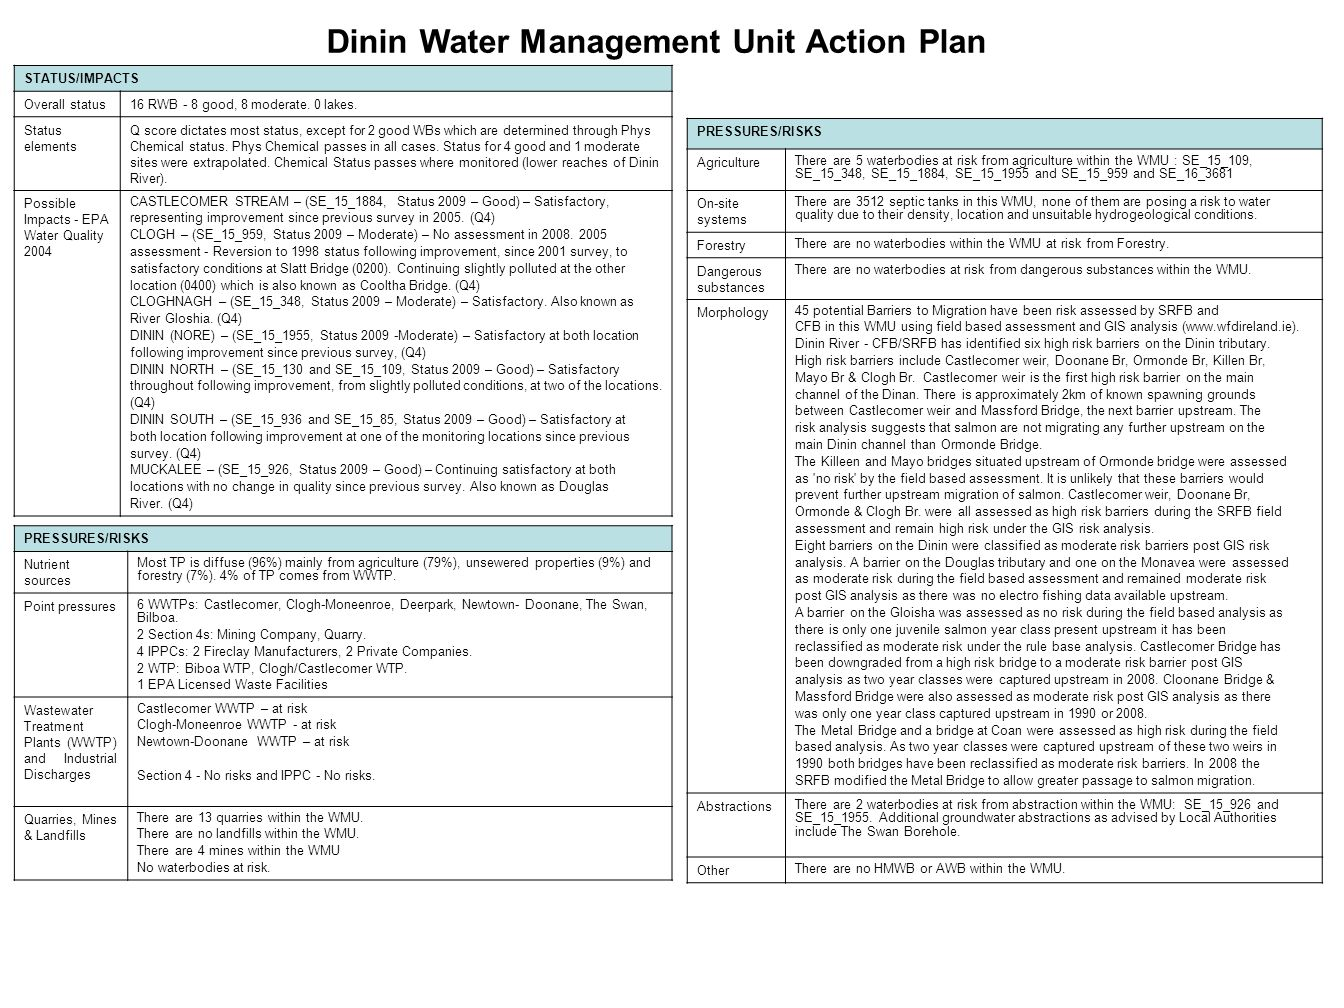 Dinin Water Management Unit Action Plan STATUS/IMPACTS Overall status16 RWB - 8 good, 8 moderate.